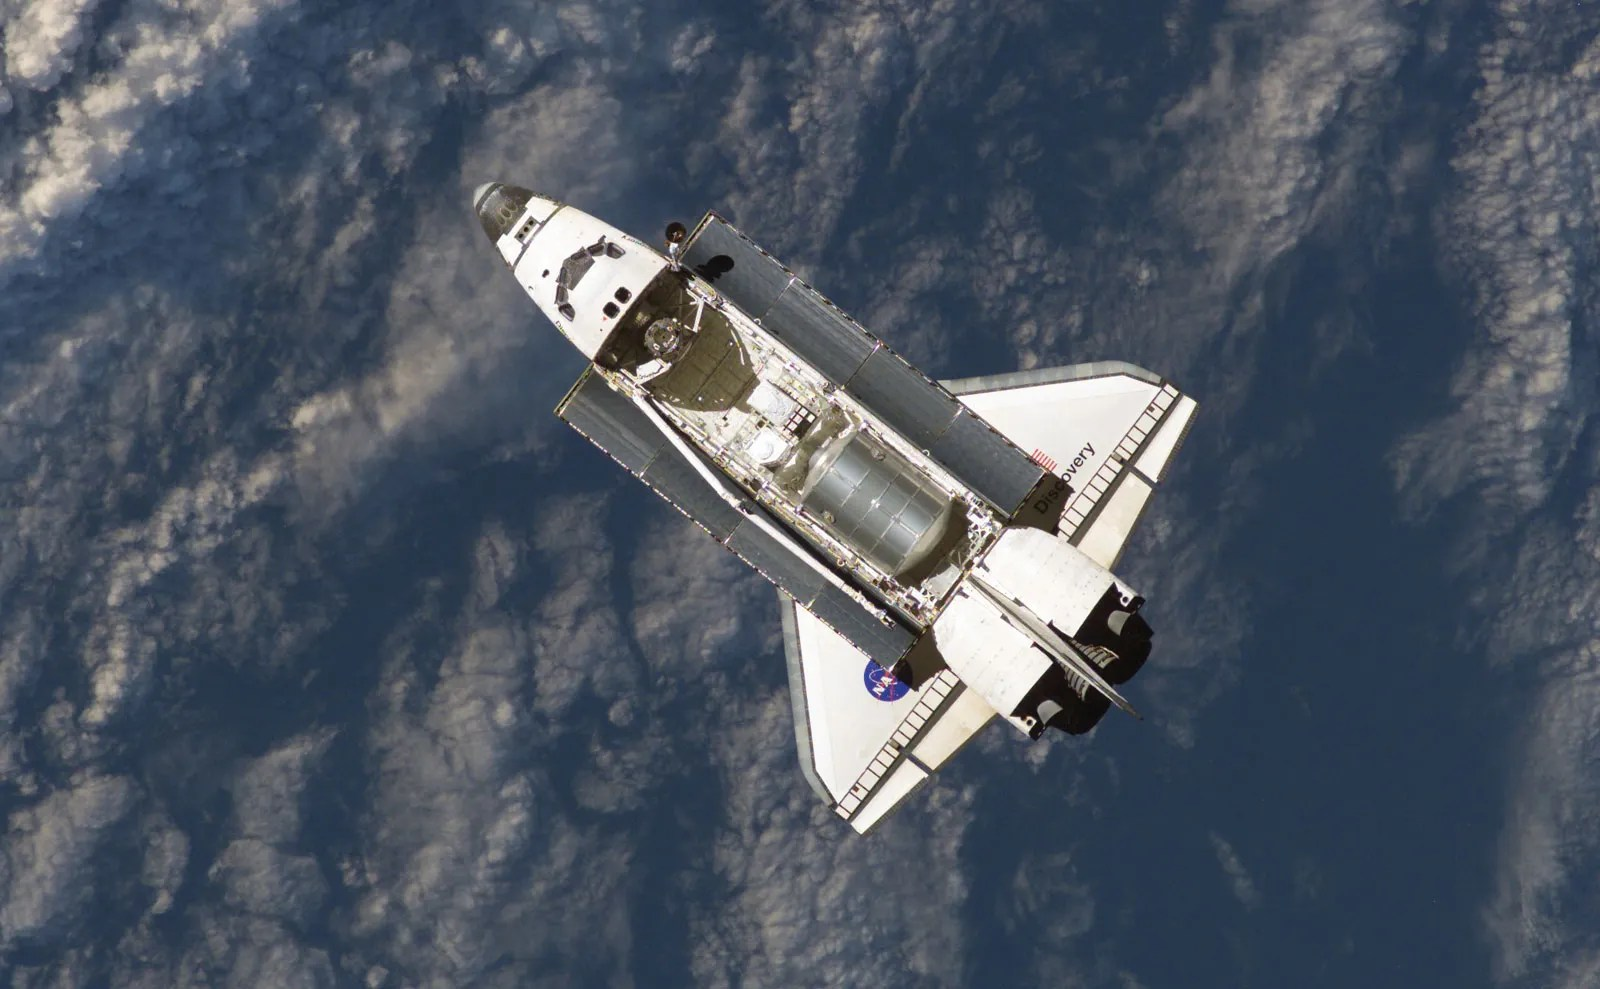 space shuttle | Names. Definition. Facts. & History | Britannica